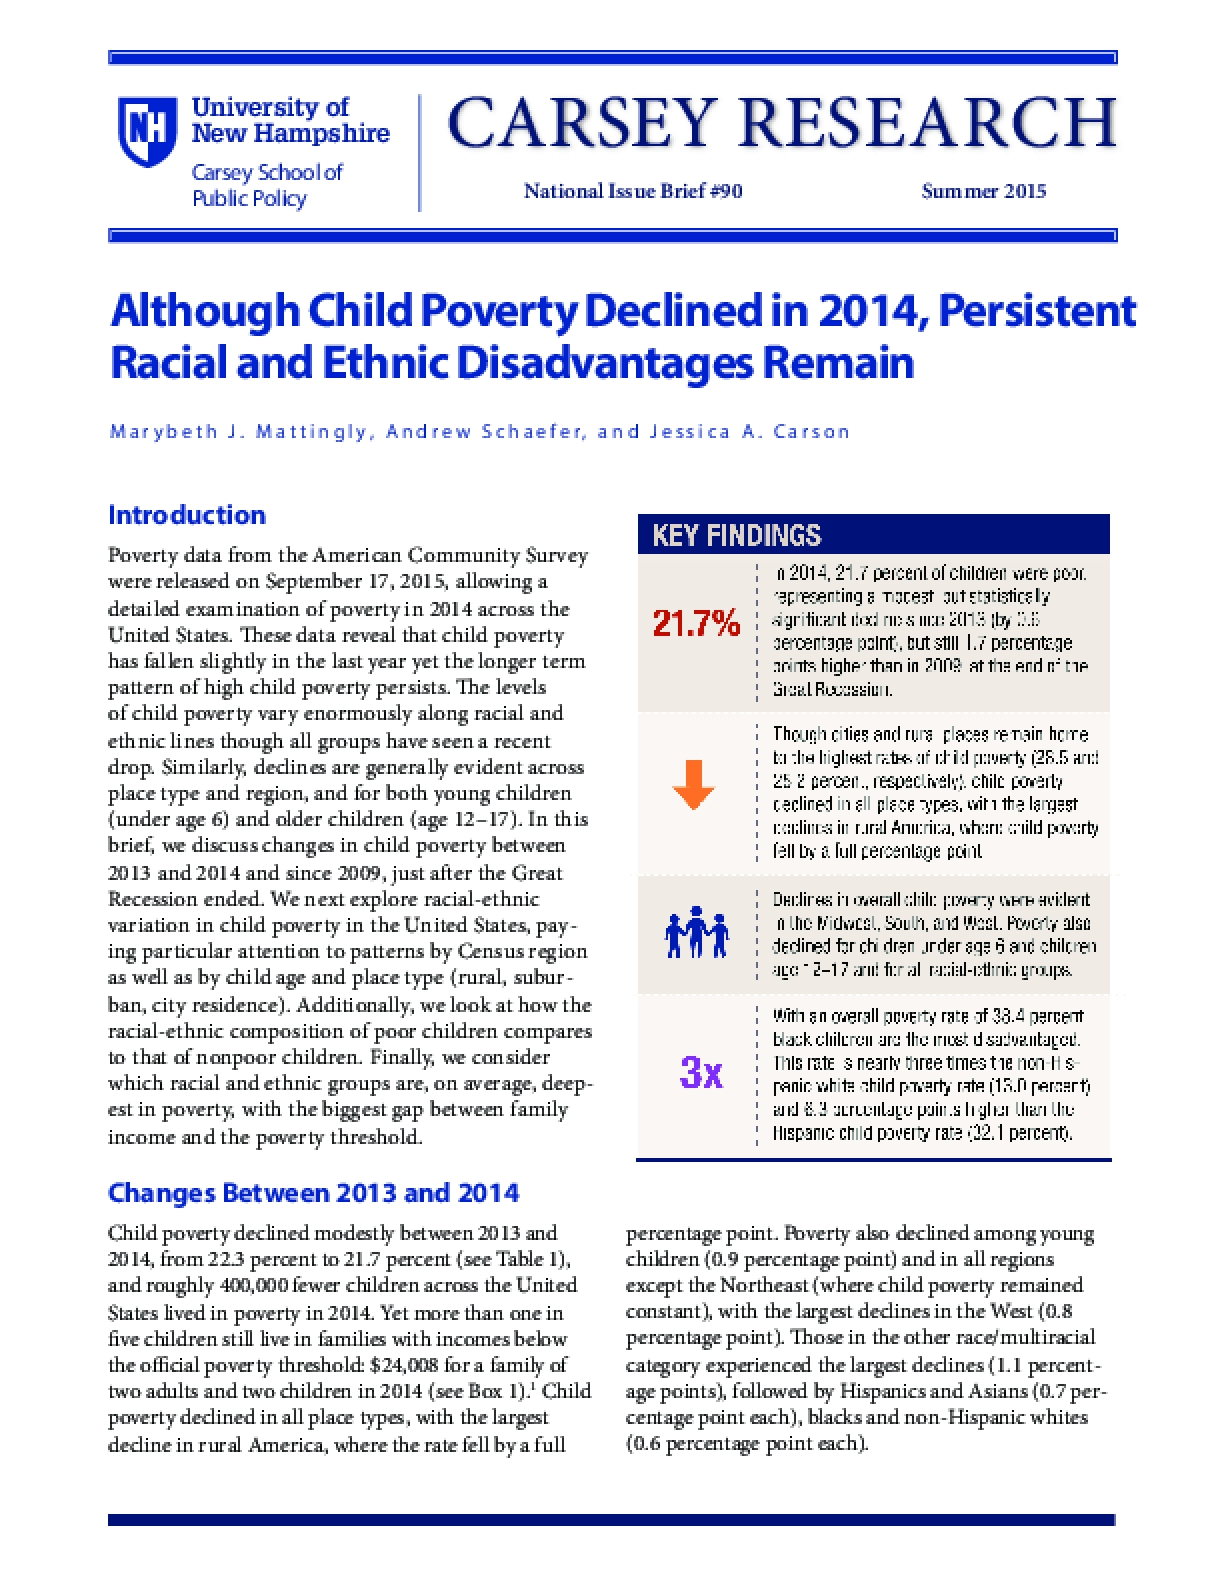 Although Child Poverty Declined in 2014, Persistent Racial and Ethnic Disadvantages Remain